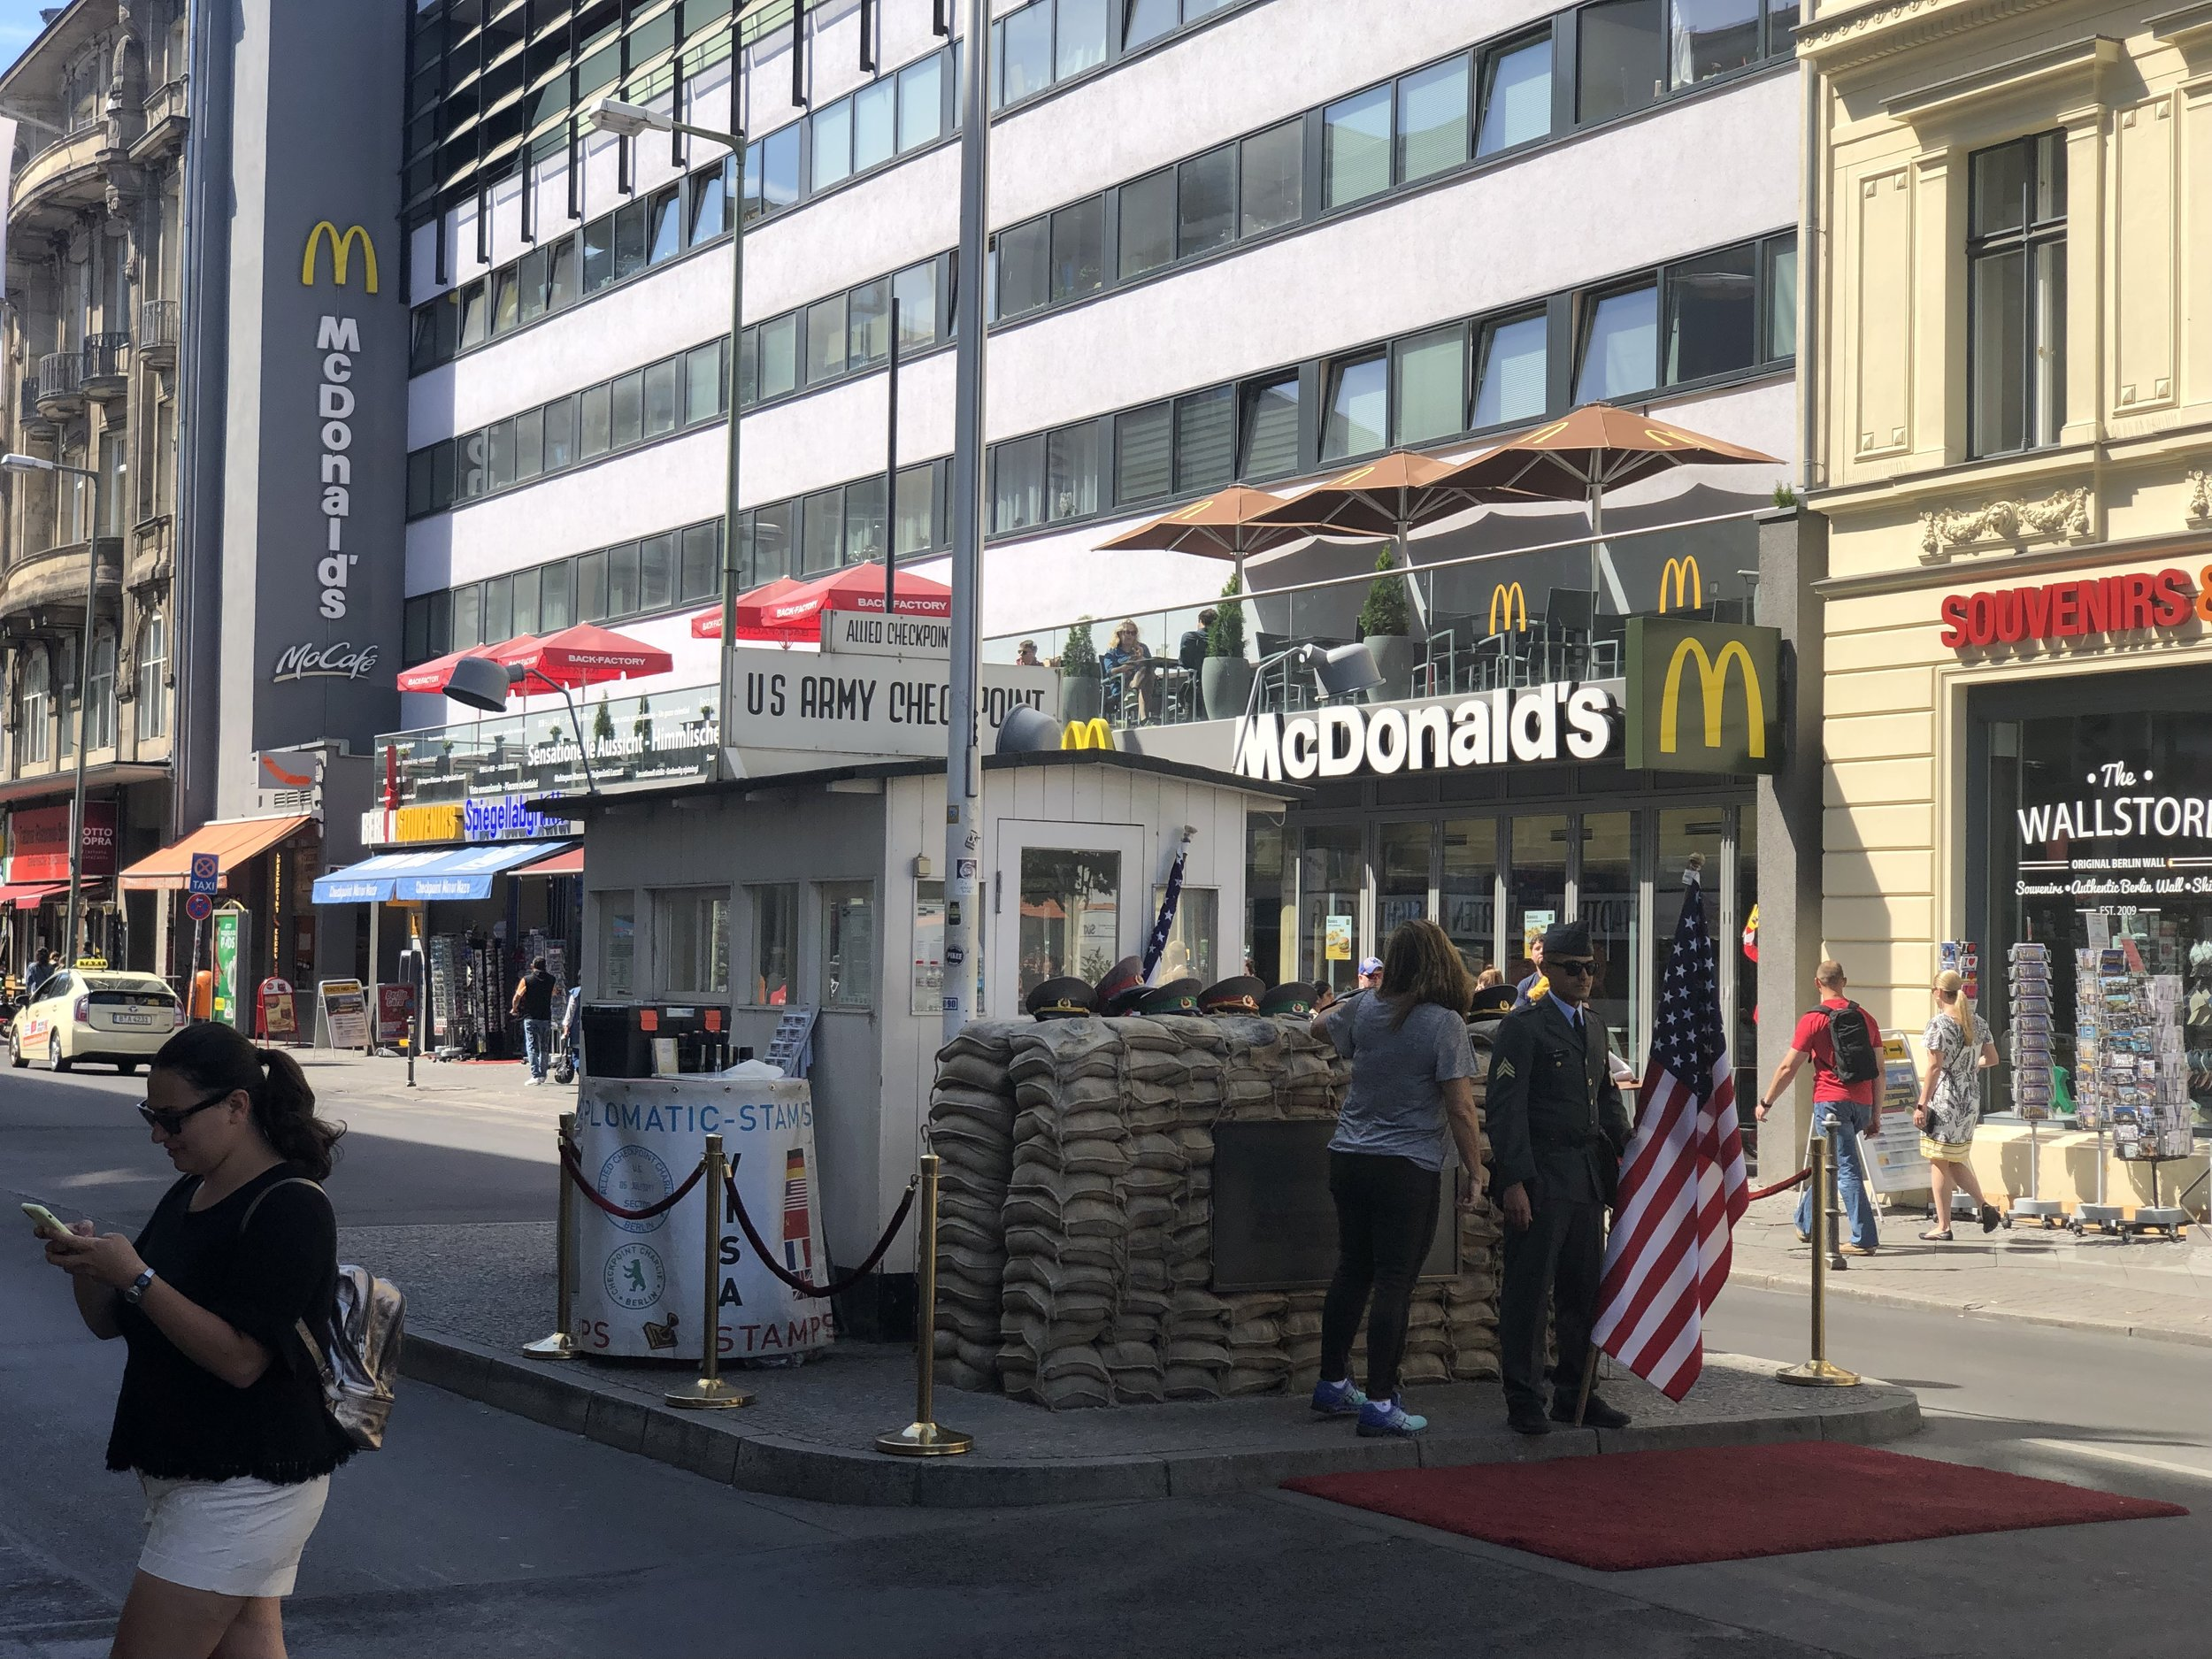 For those old enough to remember this is a photo of Checkpoint Charlie (or a recreation of it). Somewhat ironic that a McDonald's has strategically located a restaurant nearby.